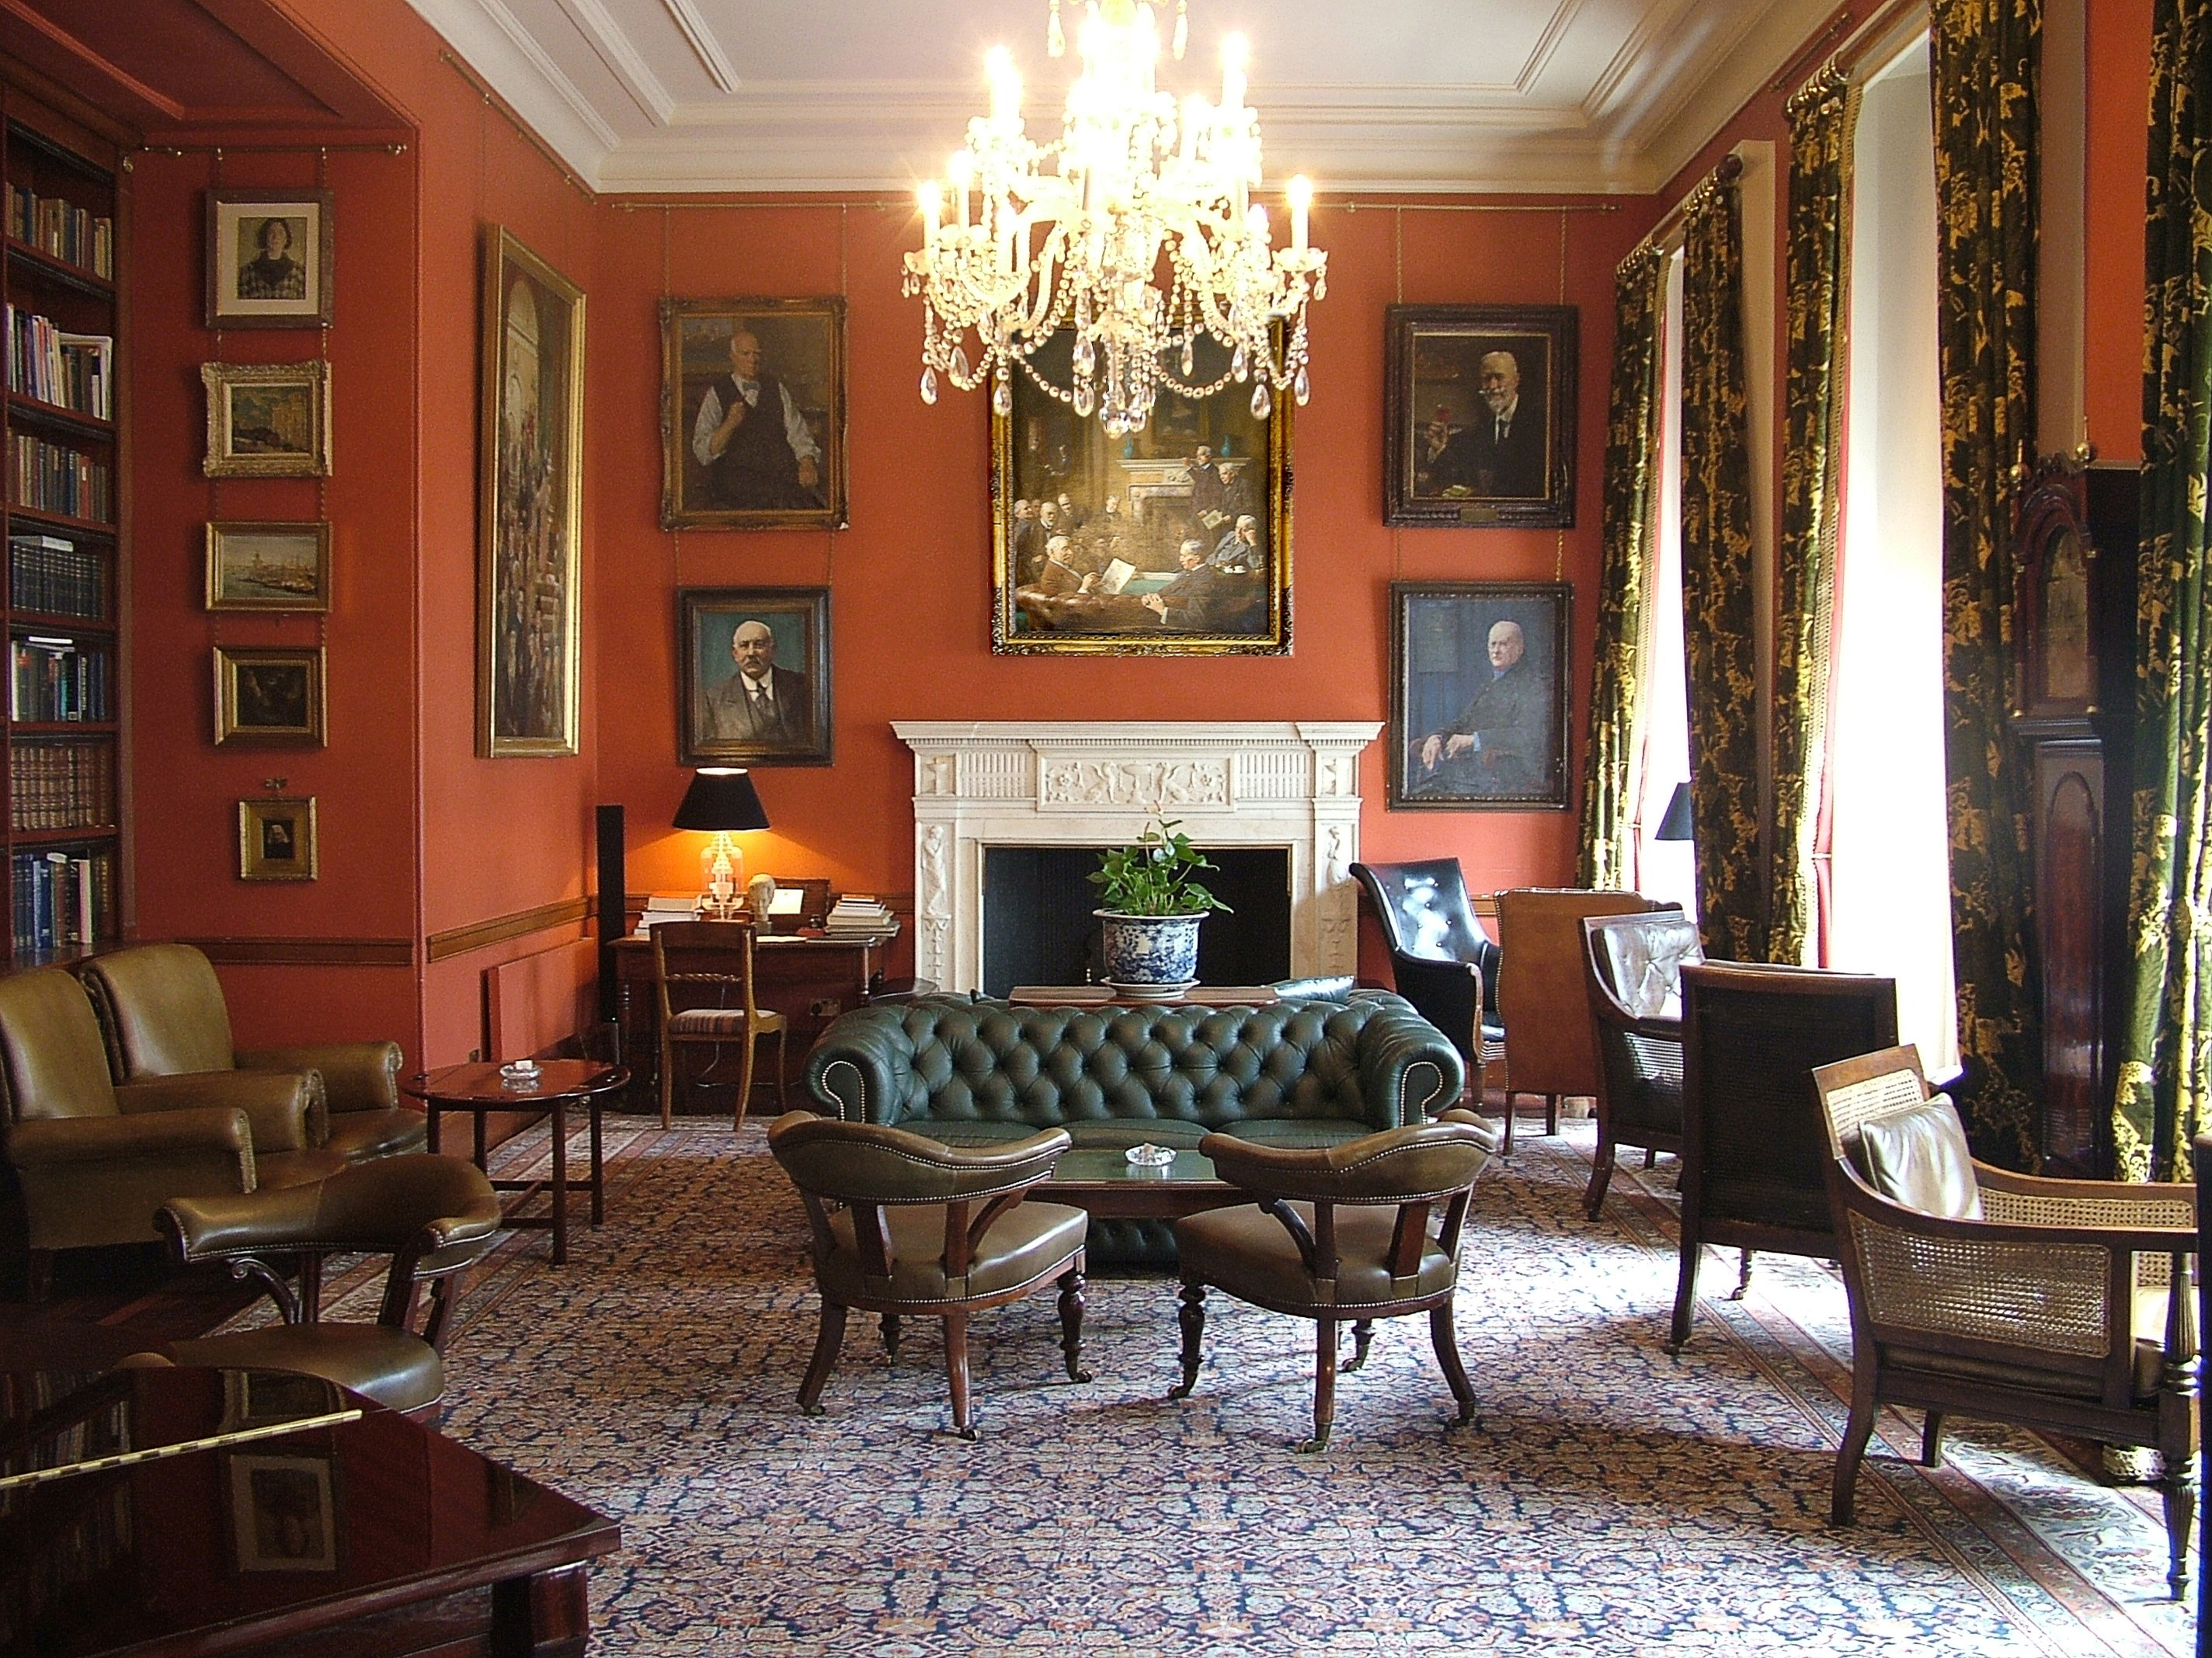 File:BC Drawing Room Good Picture.jpg - Wikimedia Commons